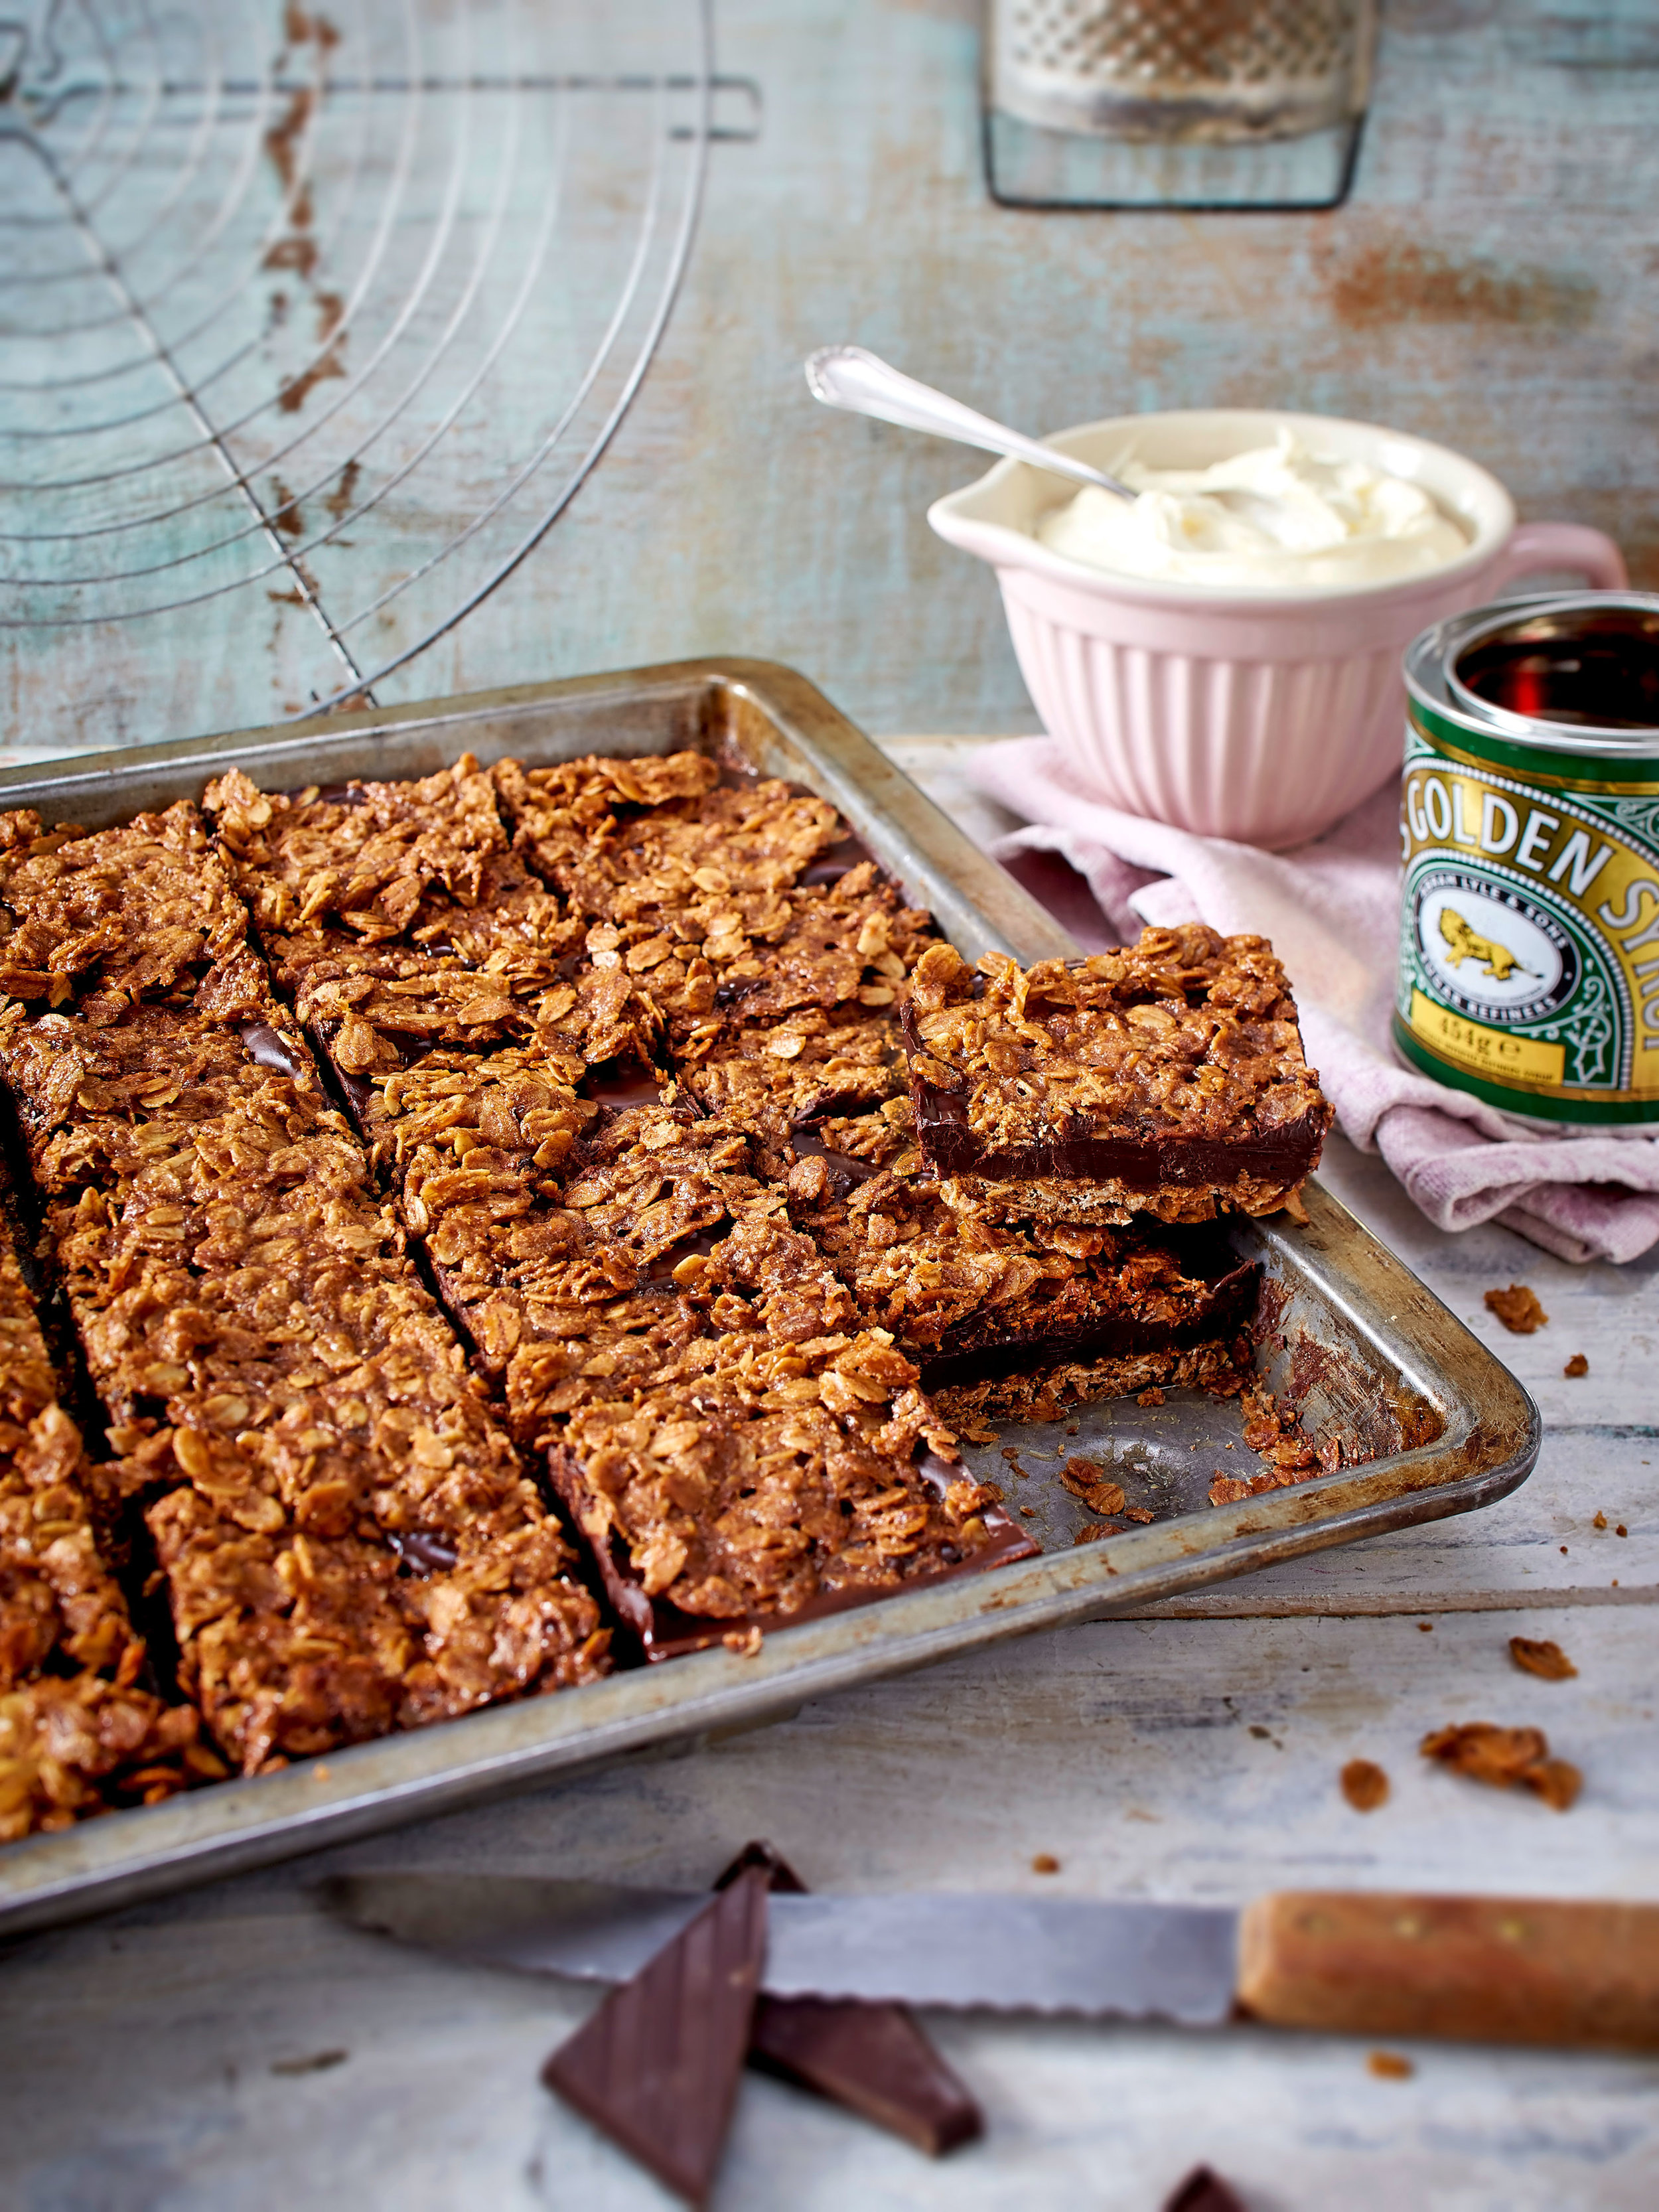 Two layers of flapjack are sandwiched together with creamy chocolate in this simple recipe.